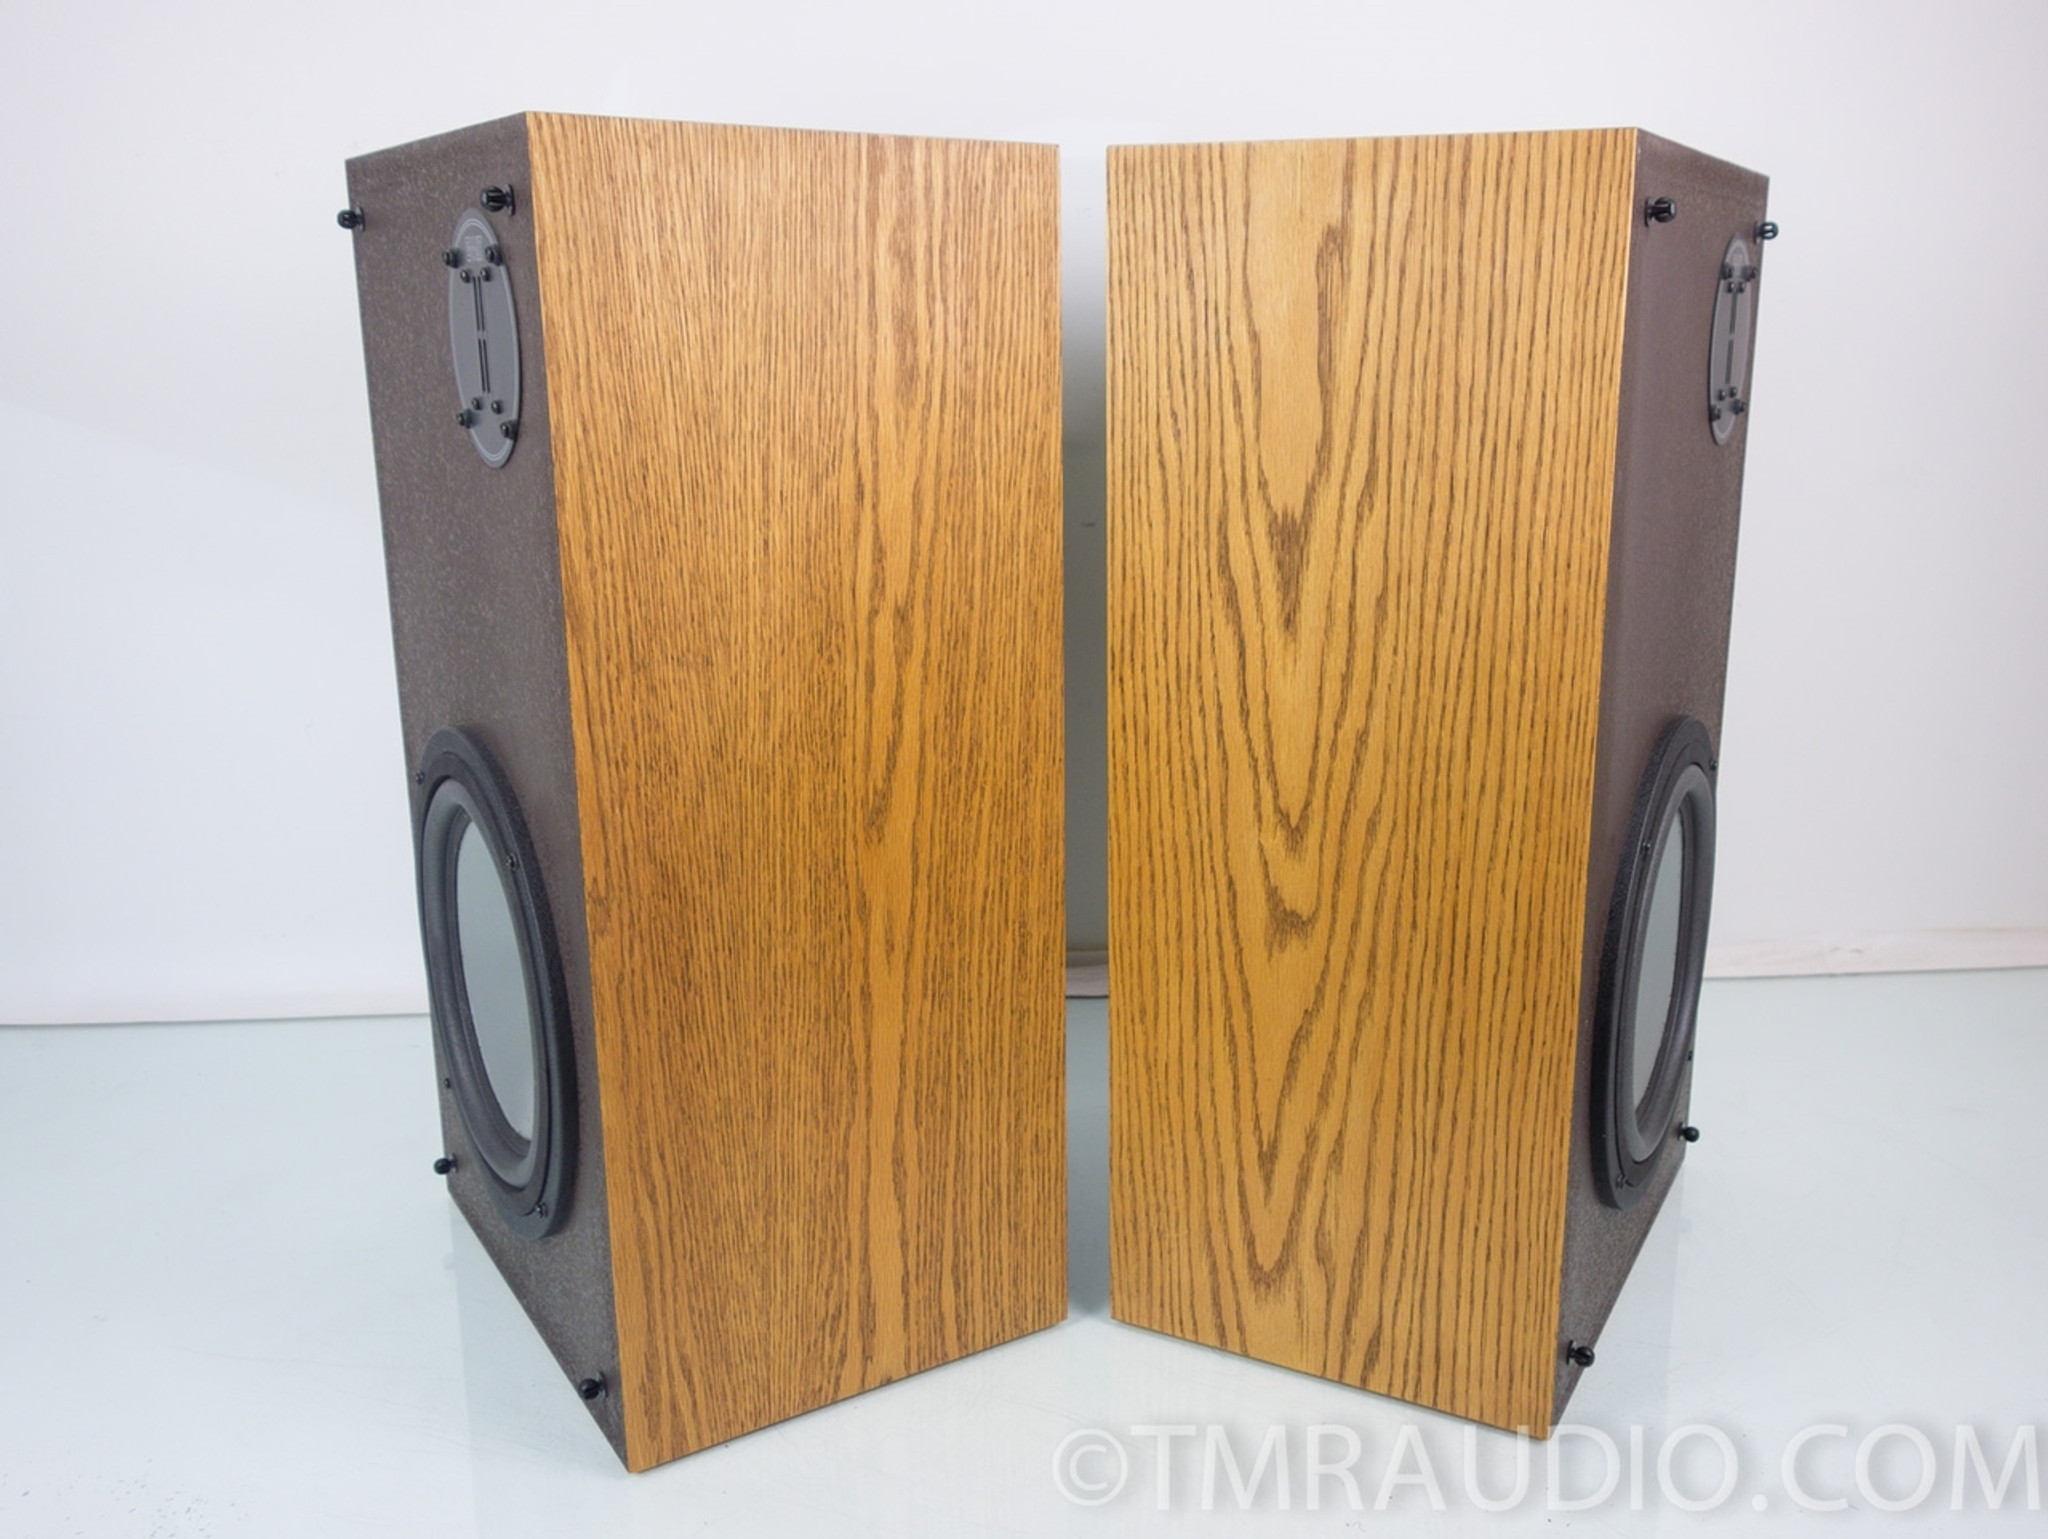 Infinity RSa Vintage Speakers in Factory Boxes w/ Stands